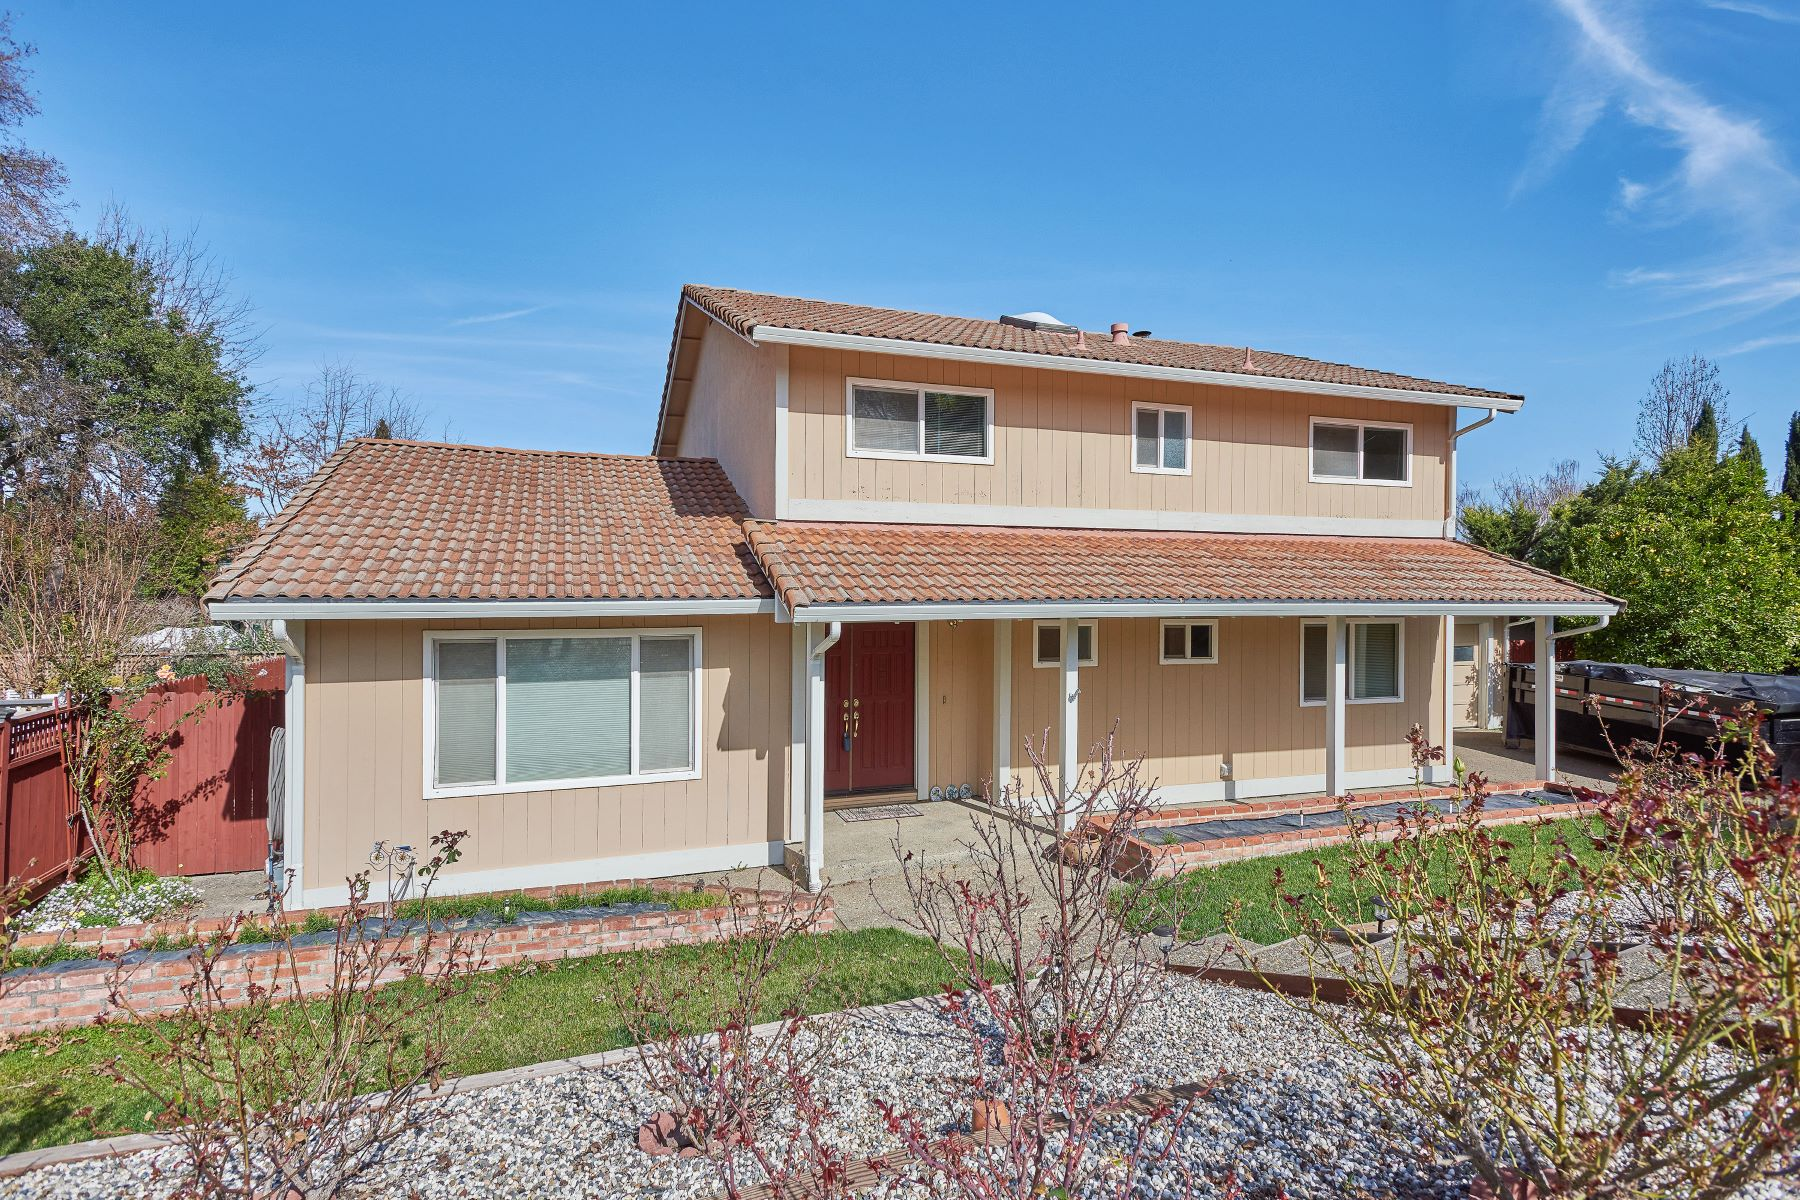 Single Family Homes for Active at Central Novato Homestead 817 Paxton Villa Court Novato, California 94947 United States